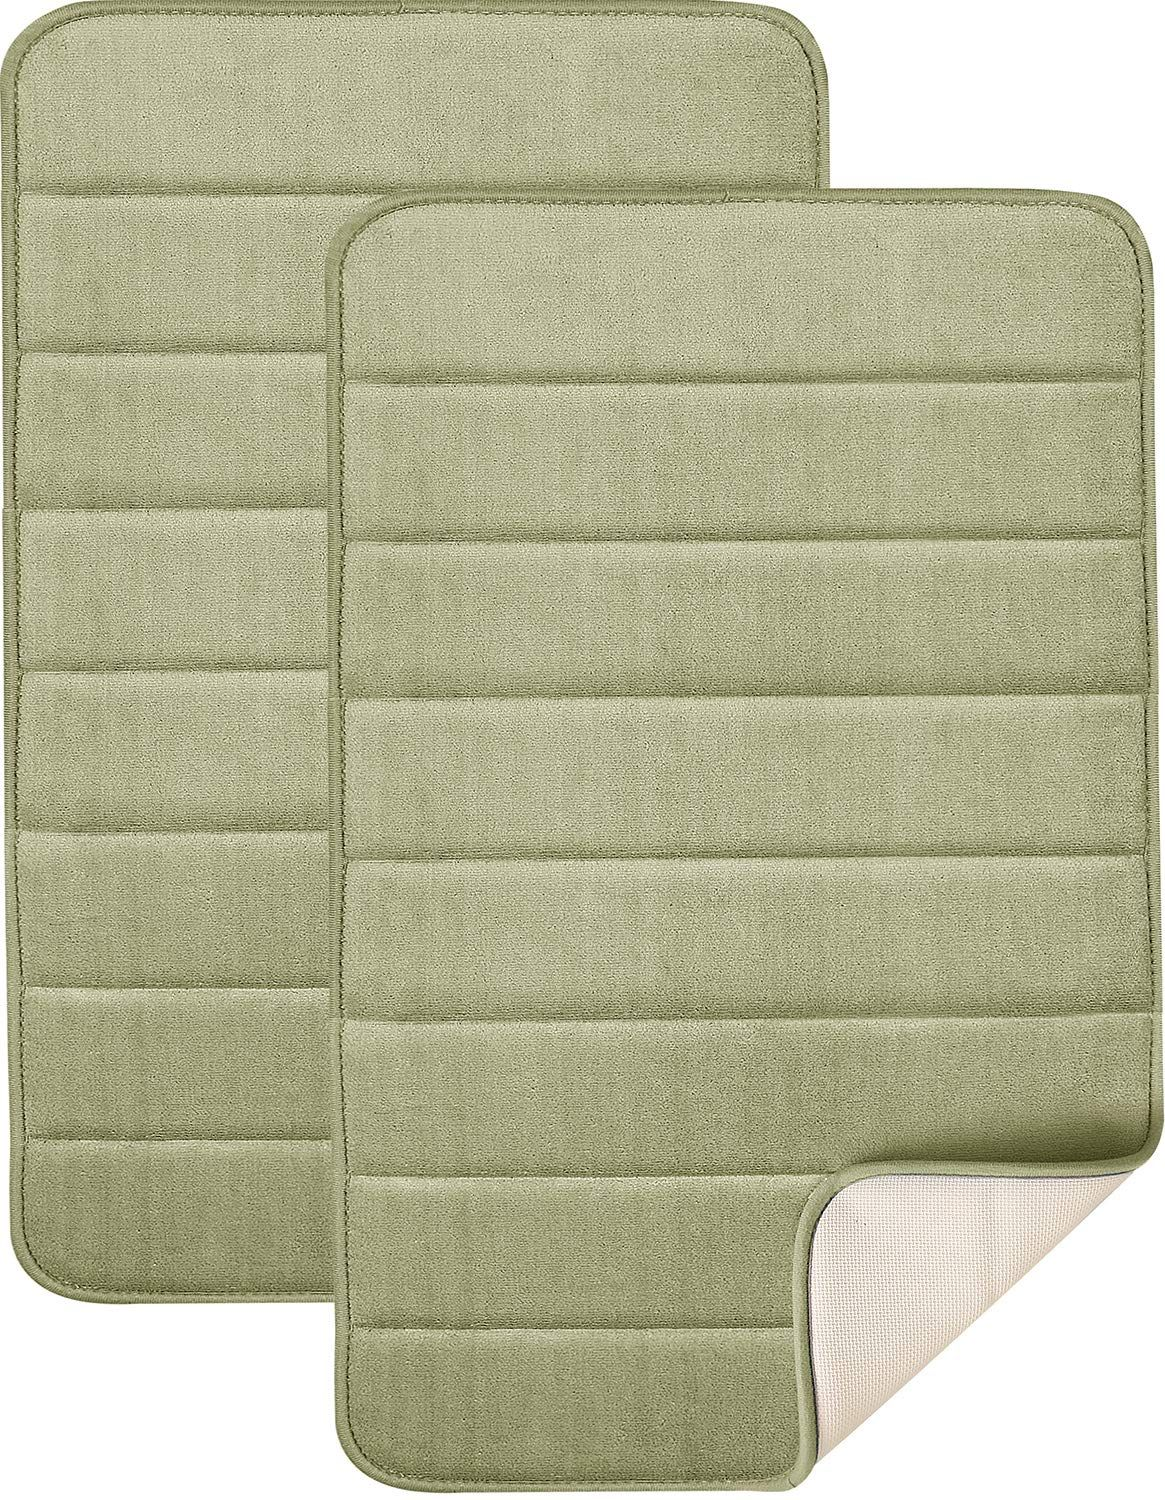 Magnificent 20 X 32 Inch Memory Foam Bath Mat Large Soft Non